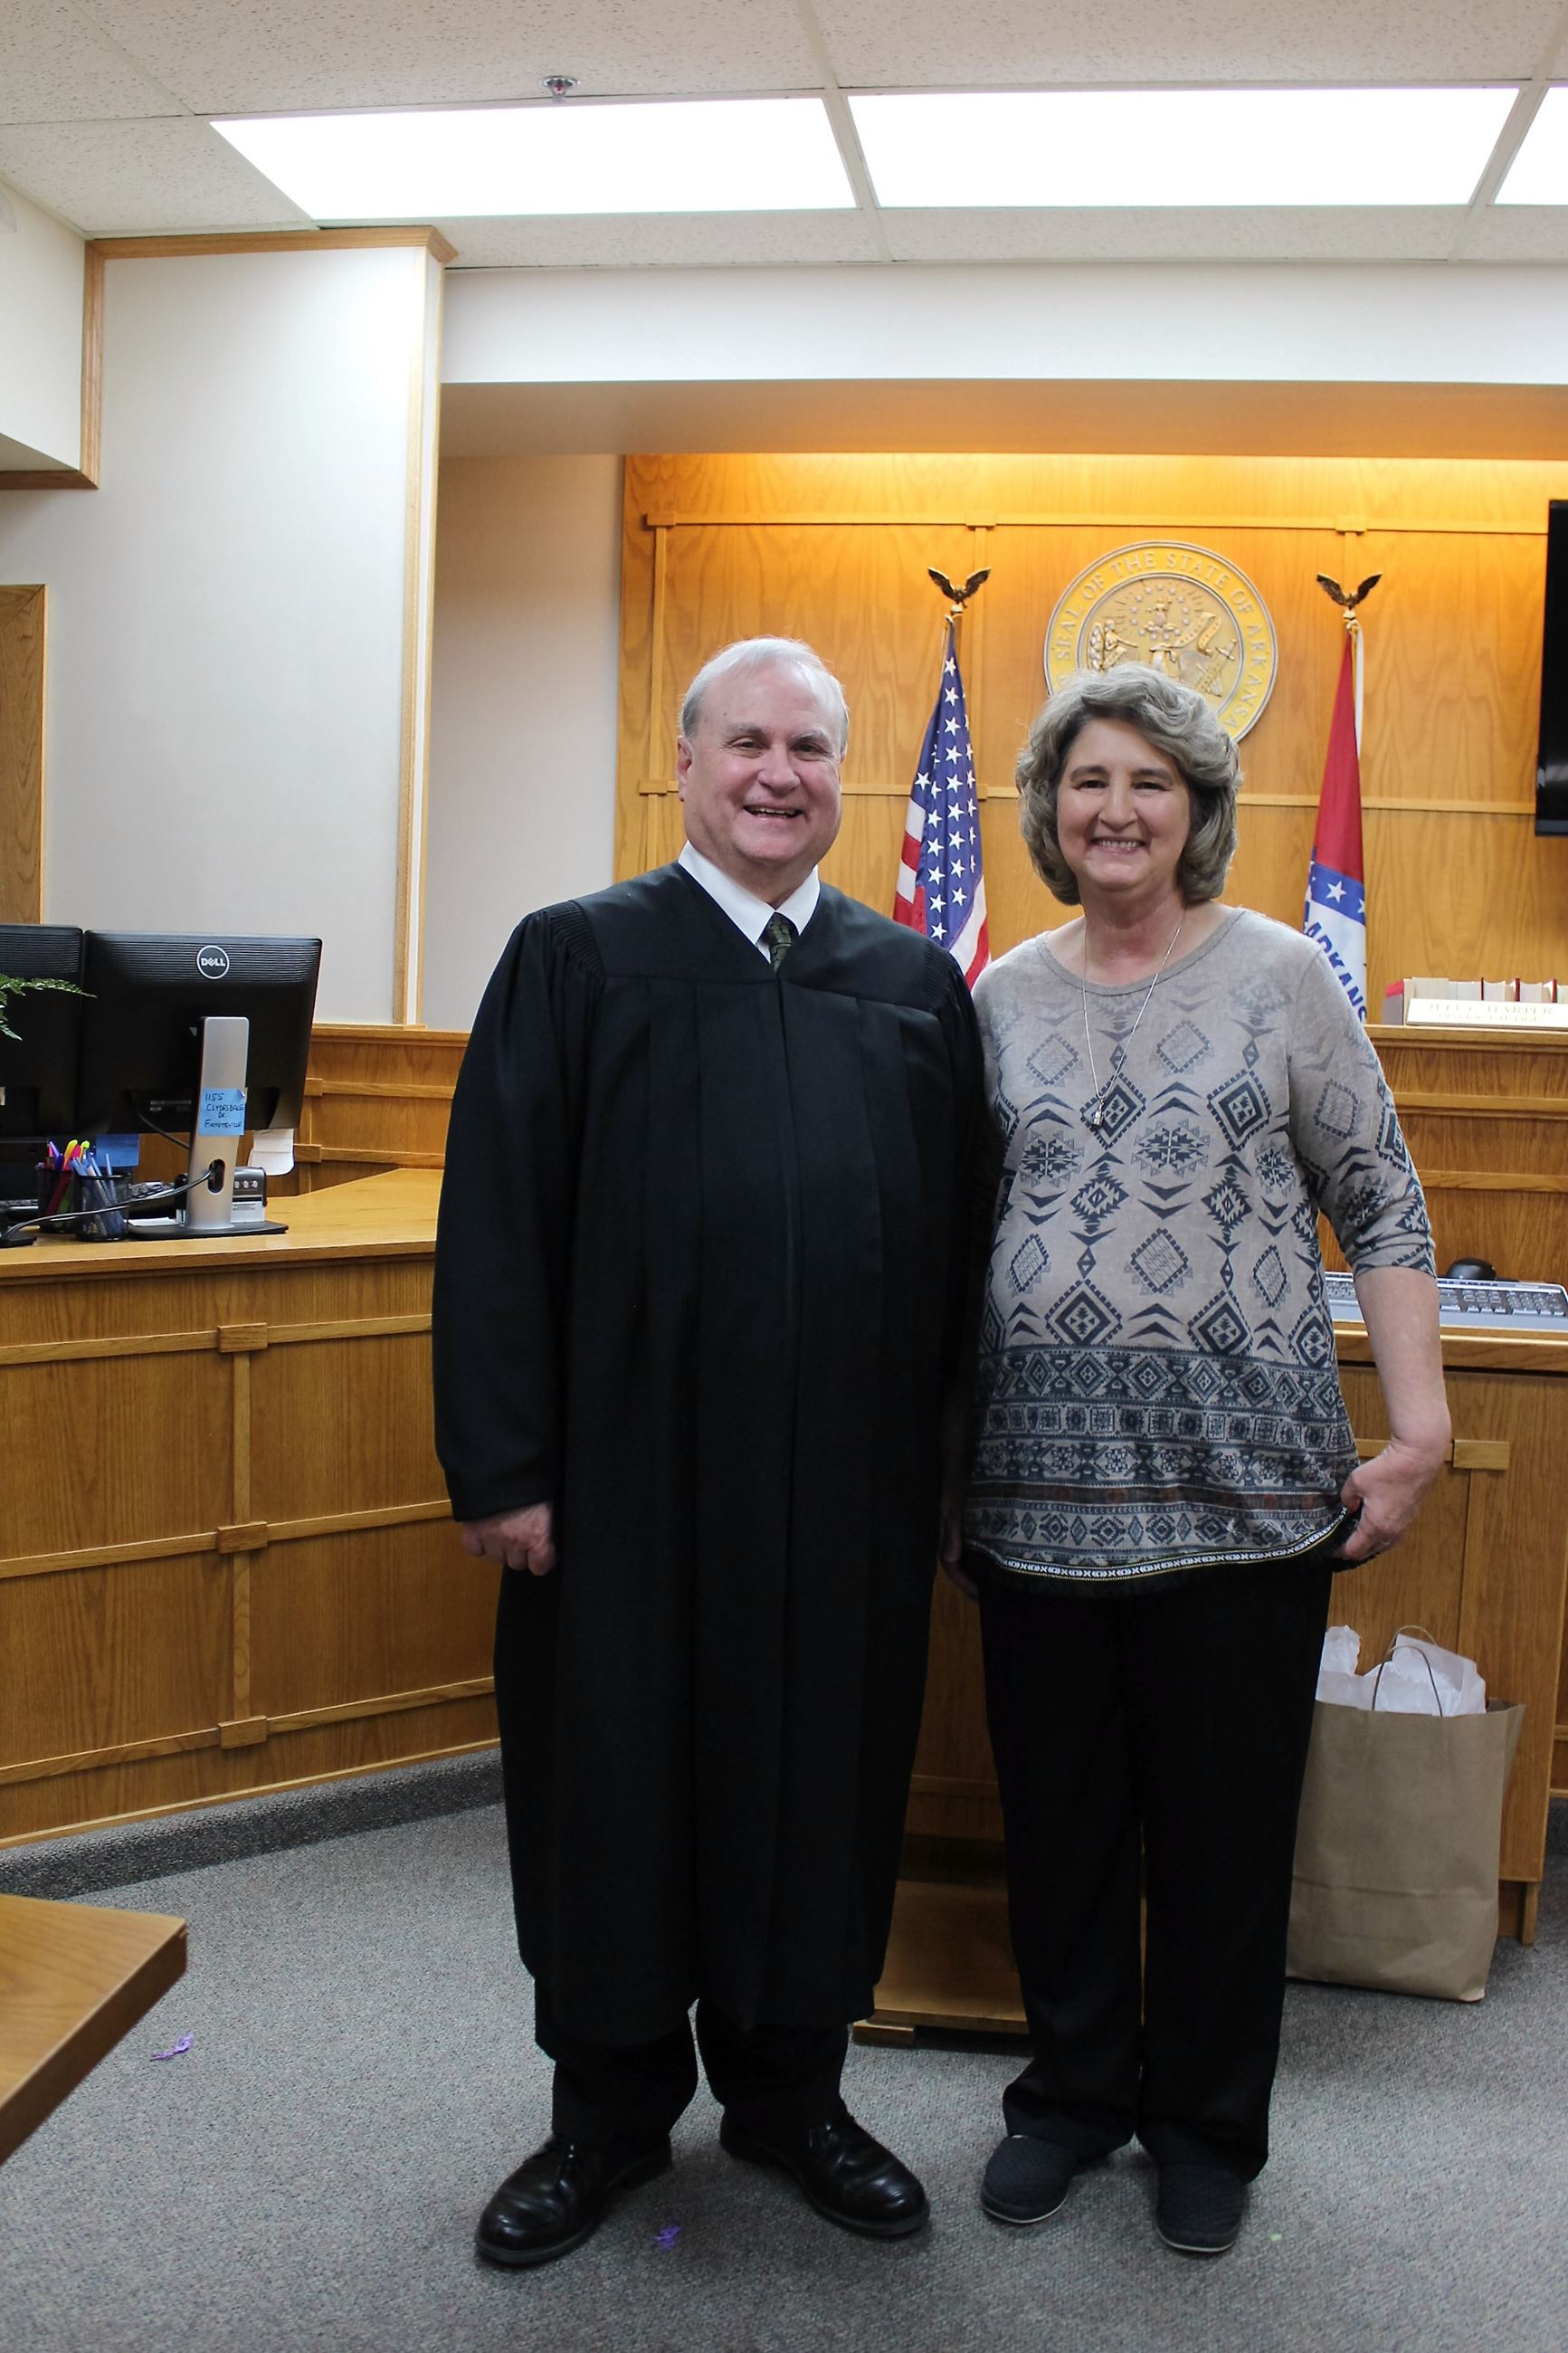 Sue Boman was sworn in as Springdale District Court's new Court Clerk.